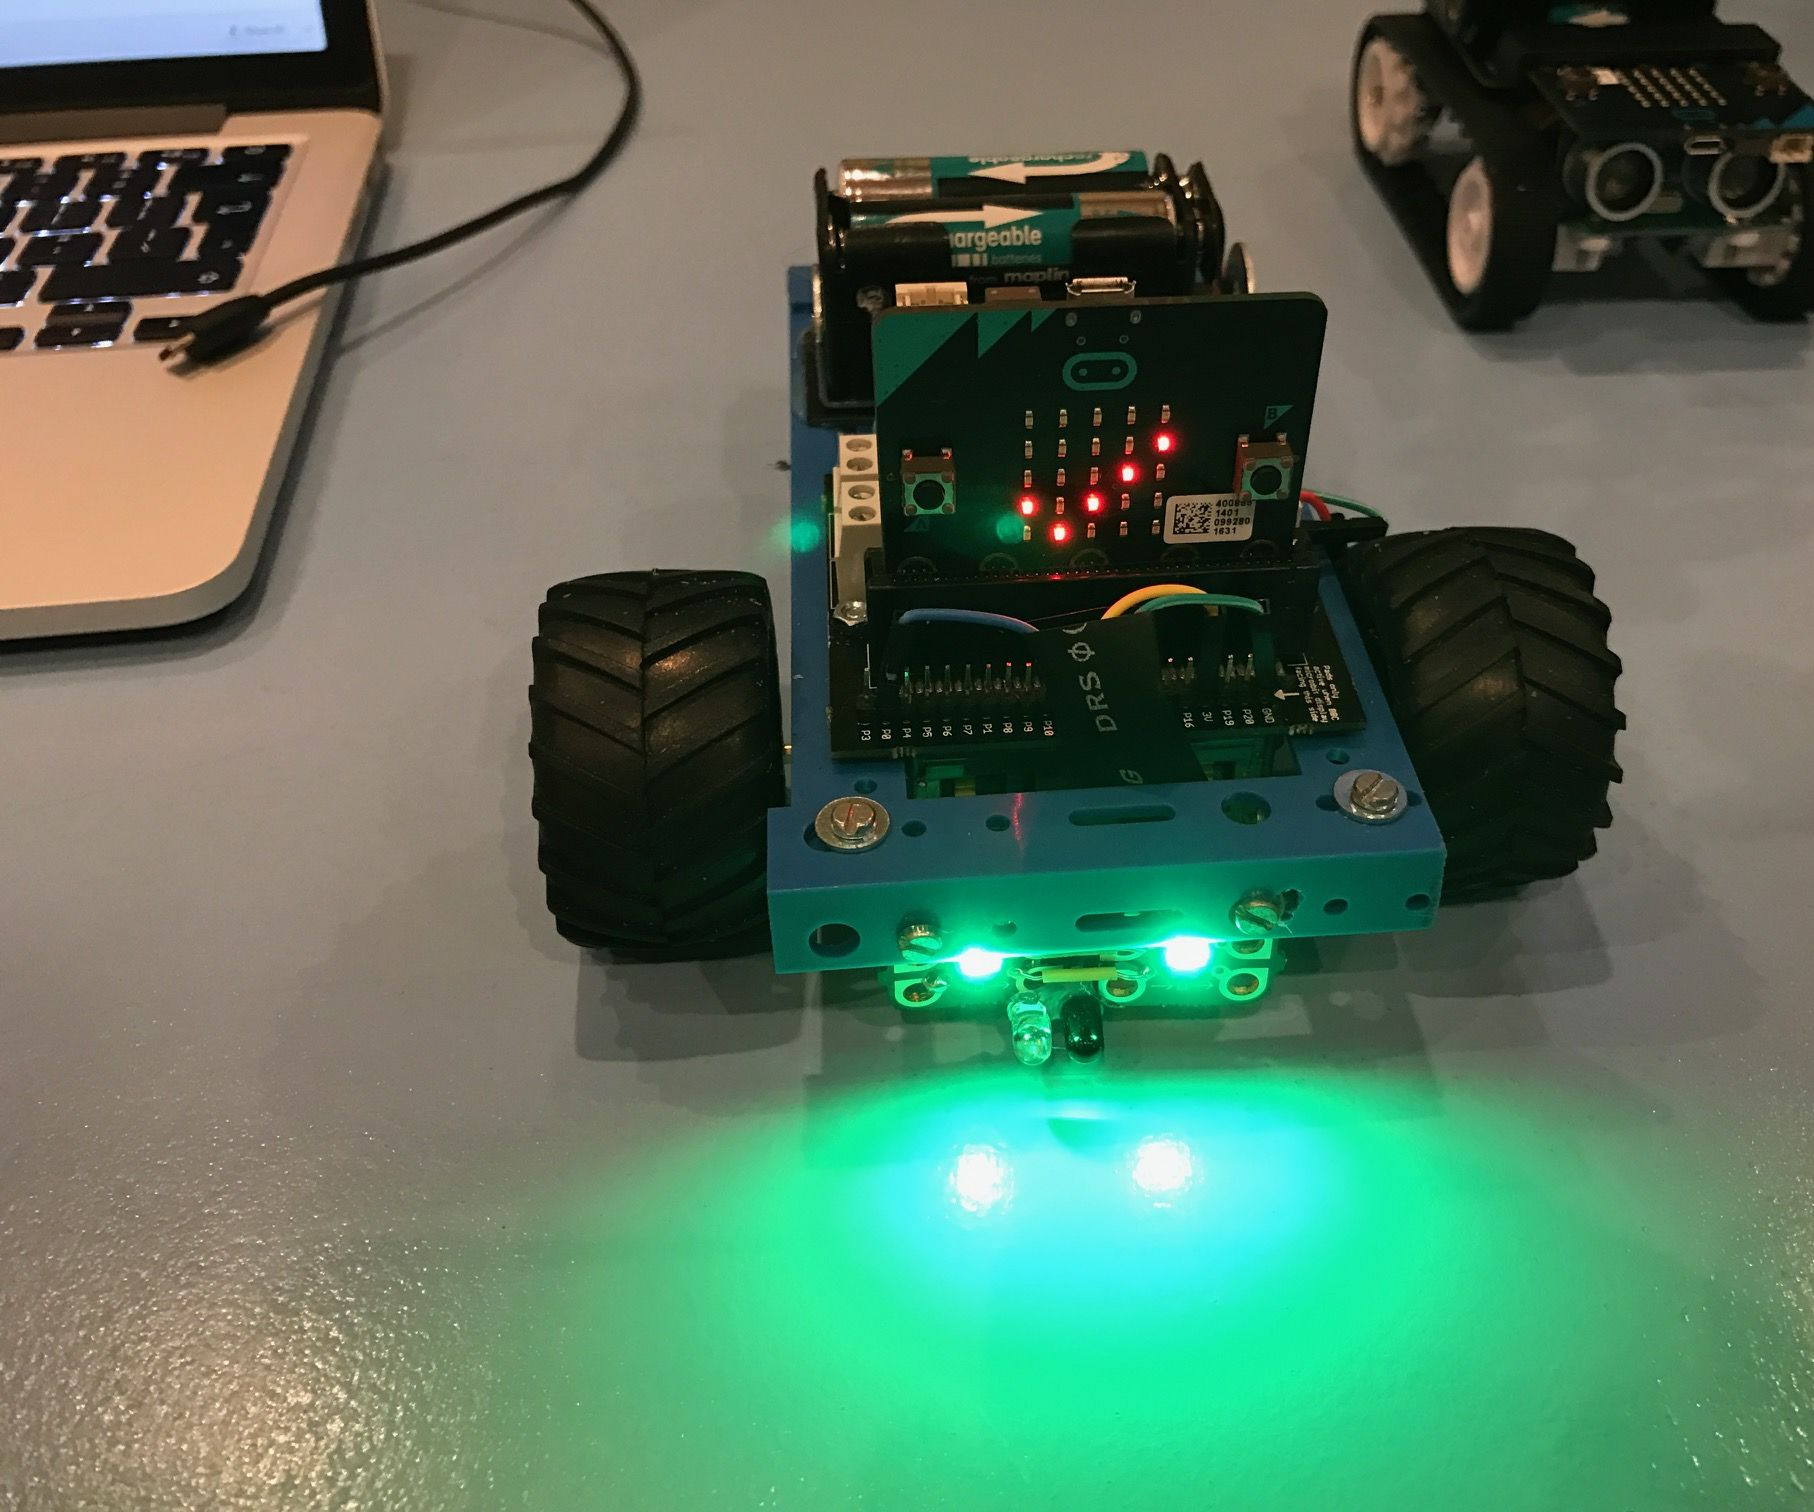 Object avoidance MIcrobit Robot using the Kitronik motor controller